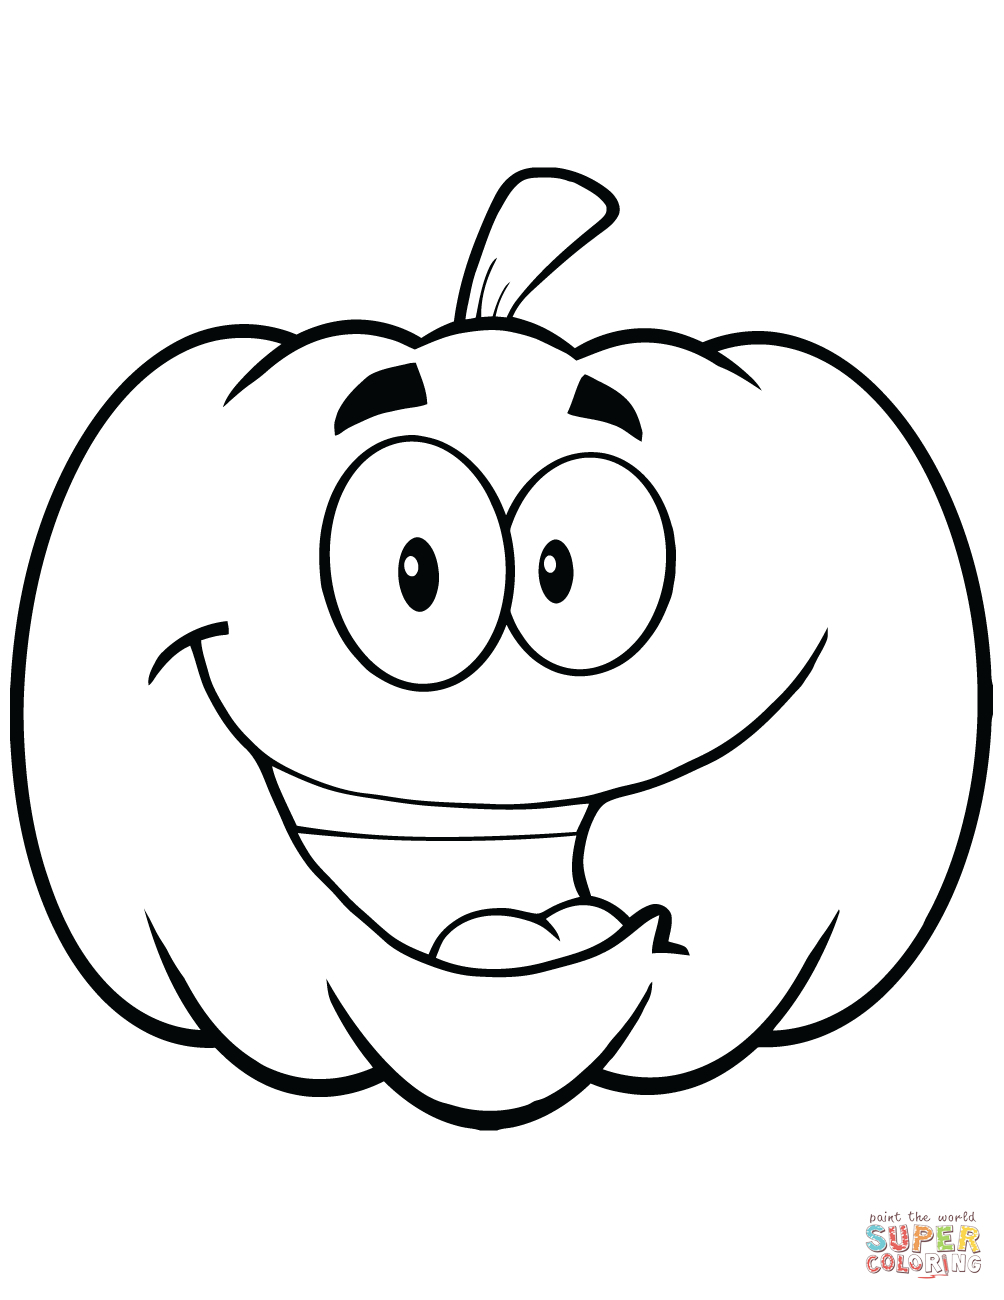 1004x1300 cartoon pumpkin drawing and cartoon pumpkin drawing pumpkin